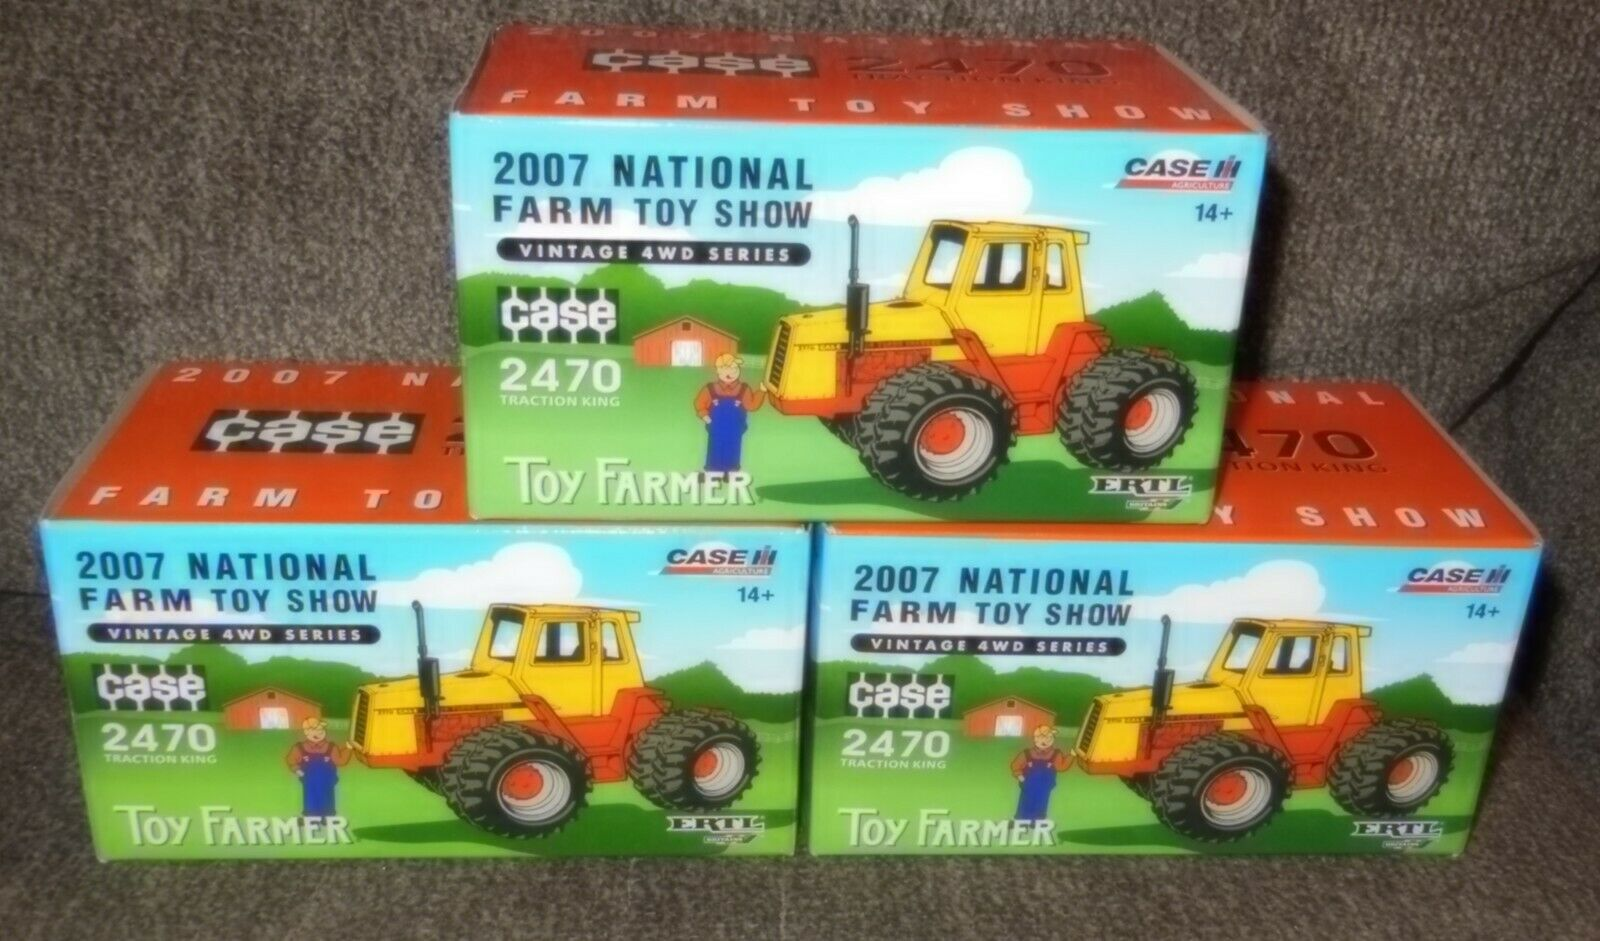 1 Case 2470 4WD Series 2007 National Farm Toy Show Tractor 1/64 Ertl